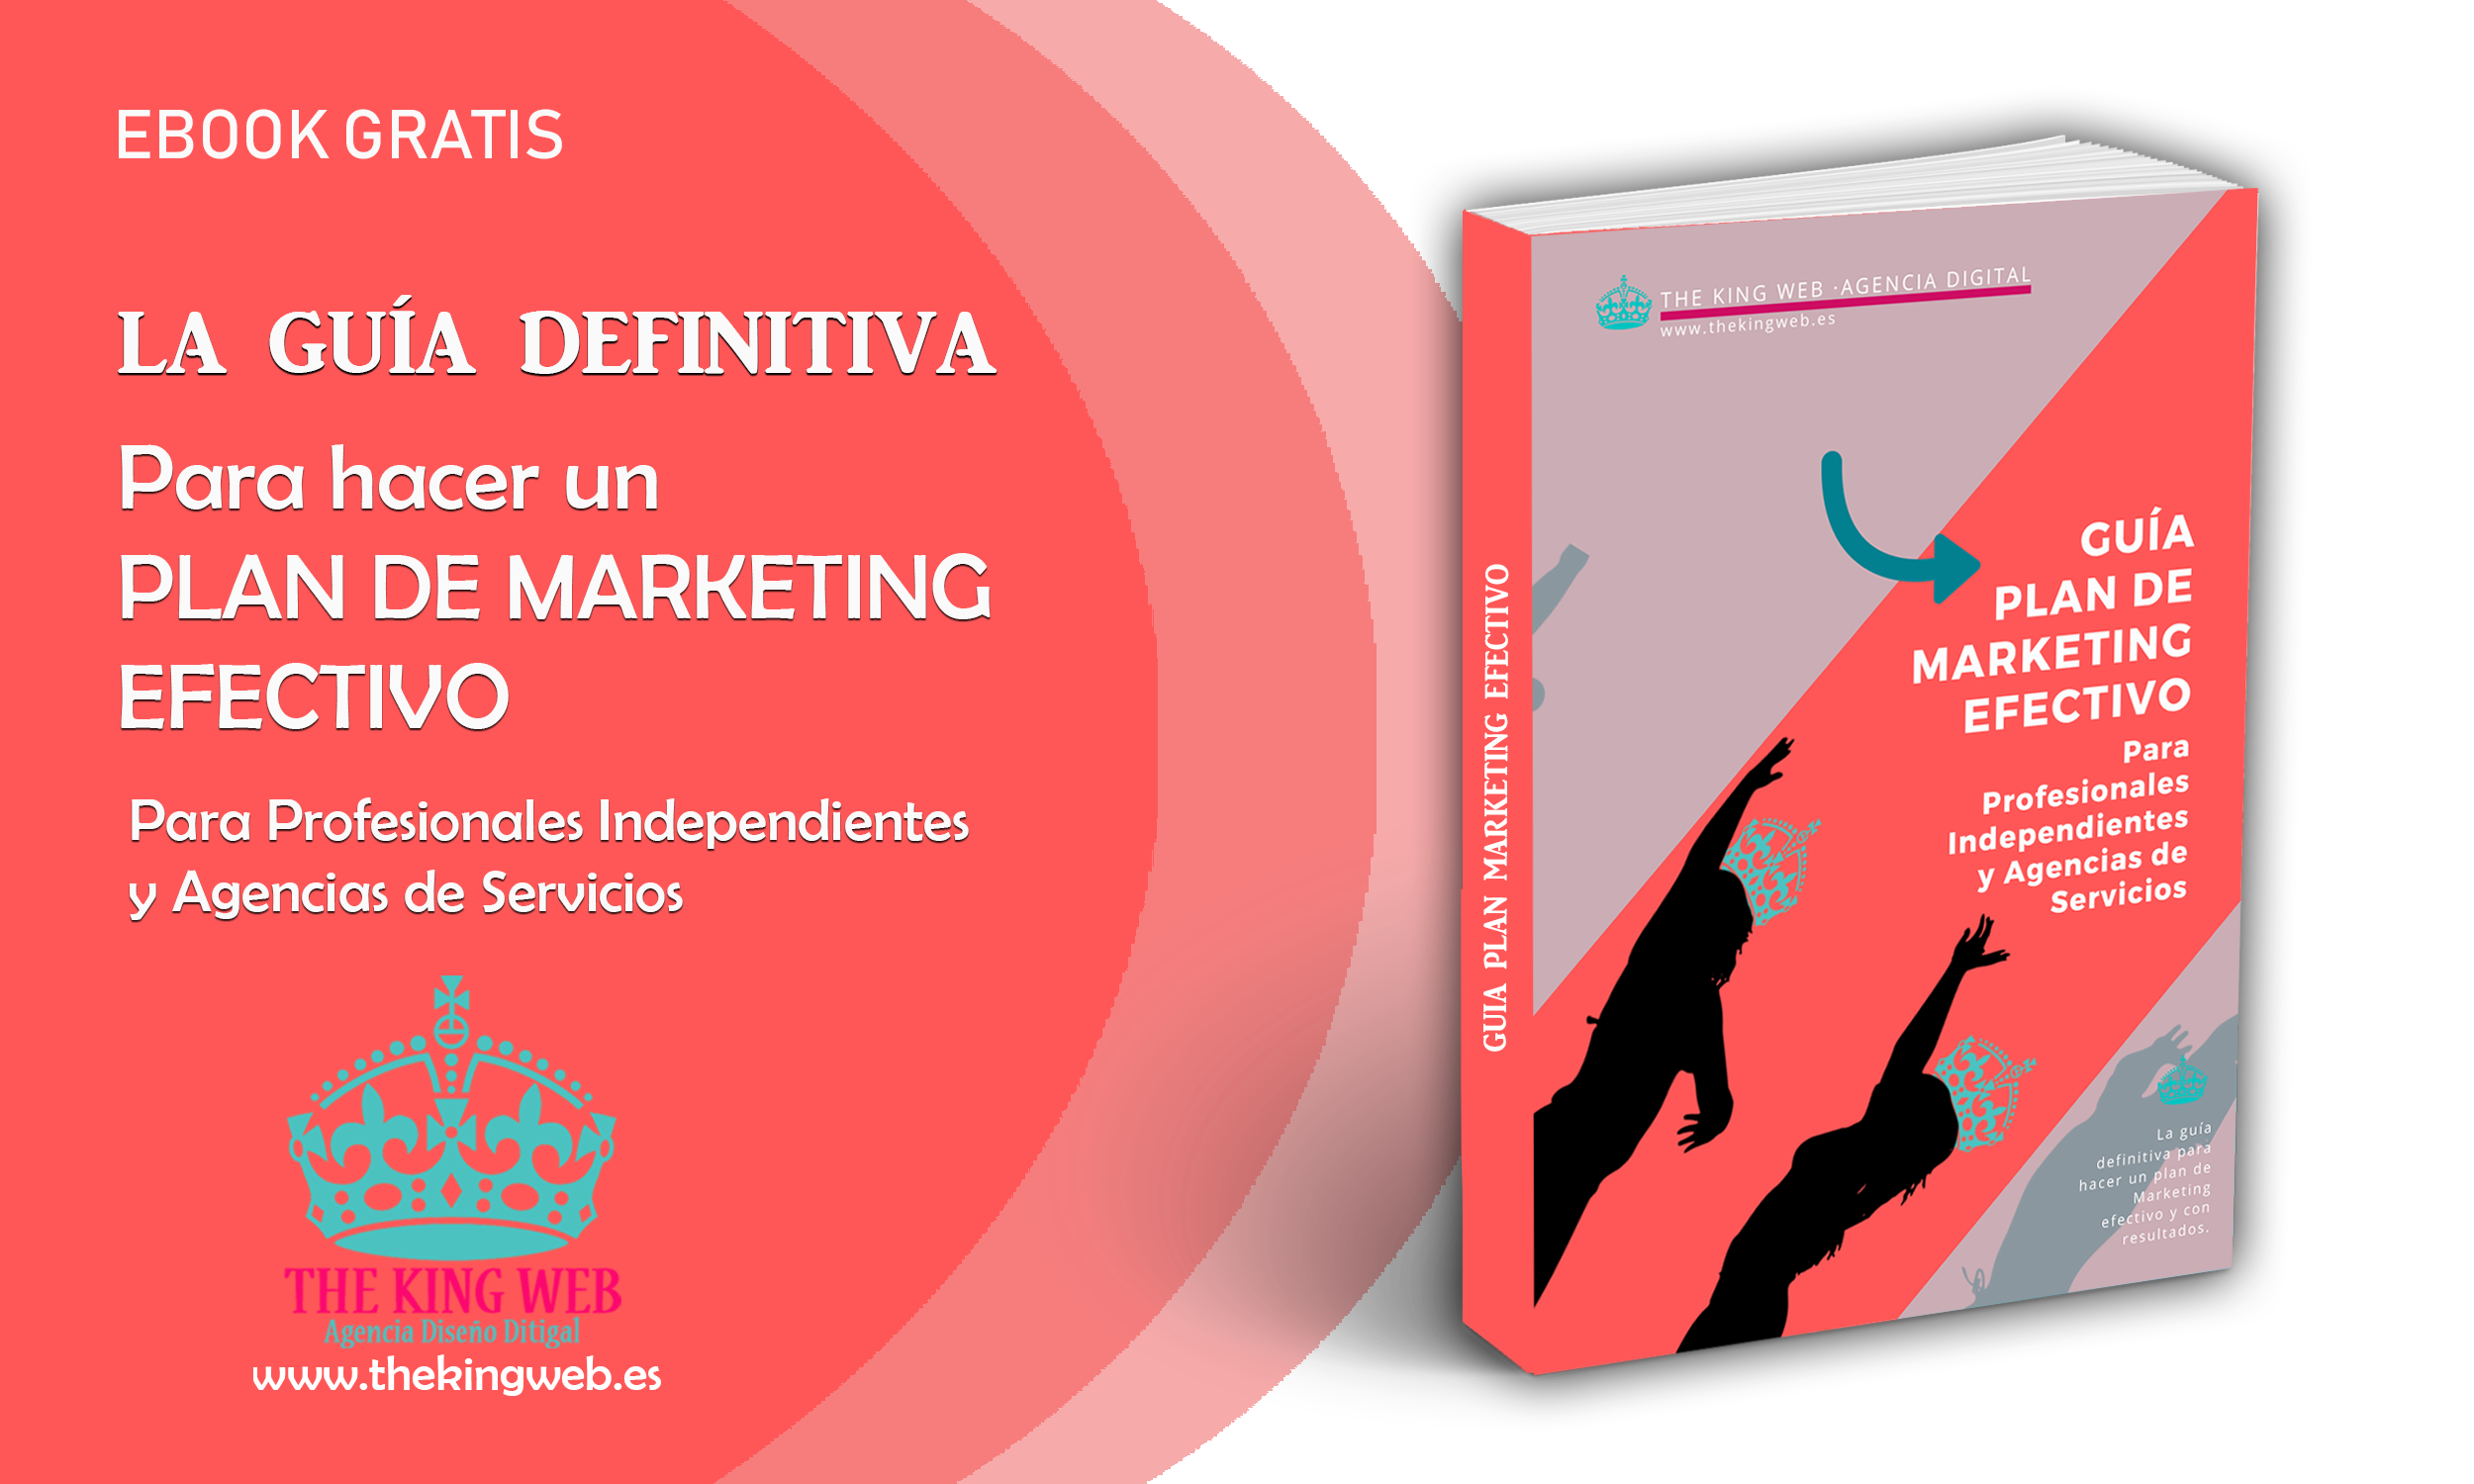 Guía plan de marketing efectivo